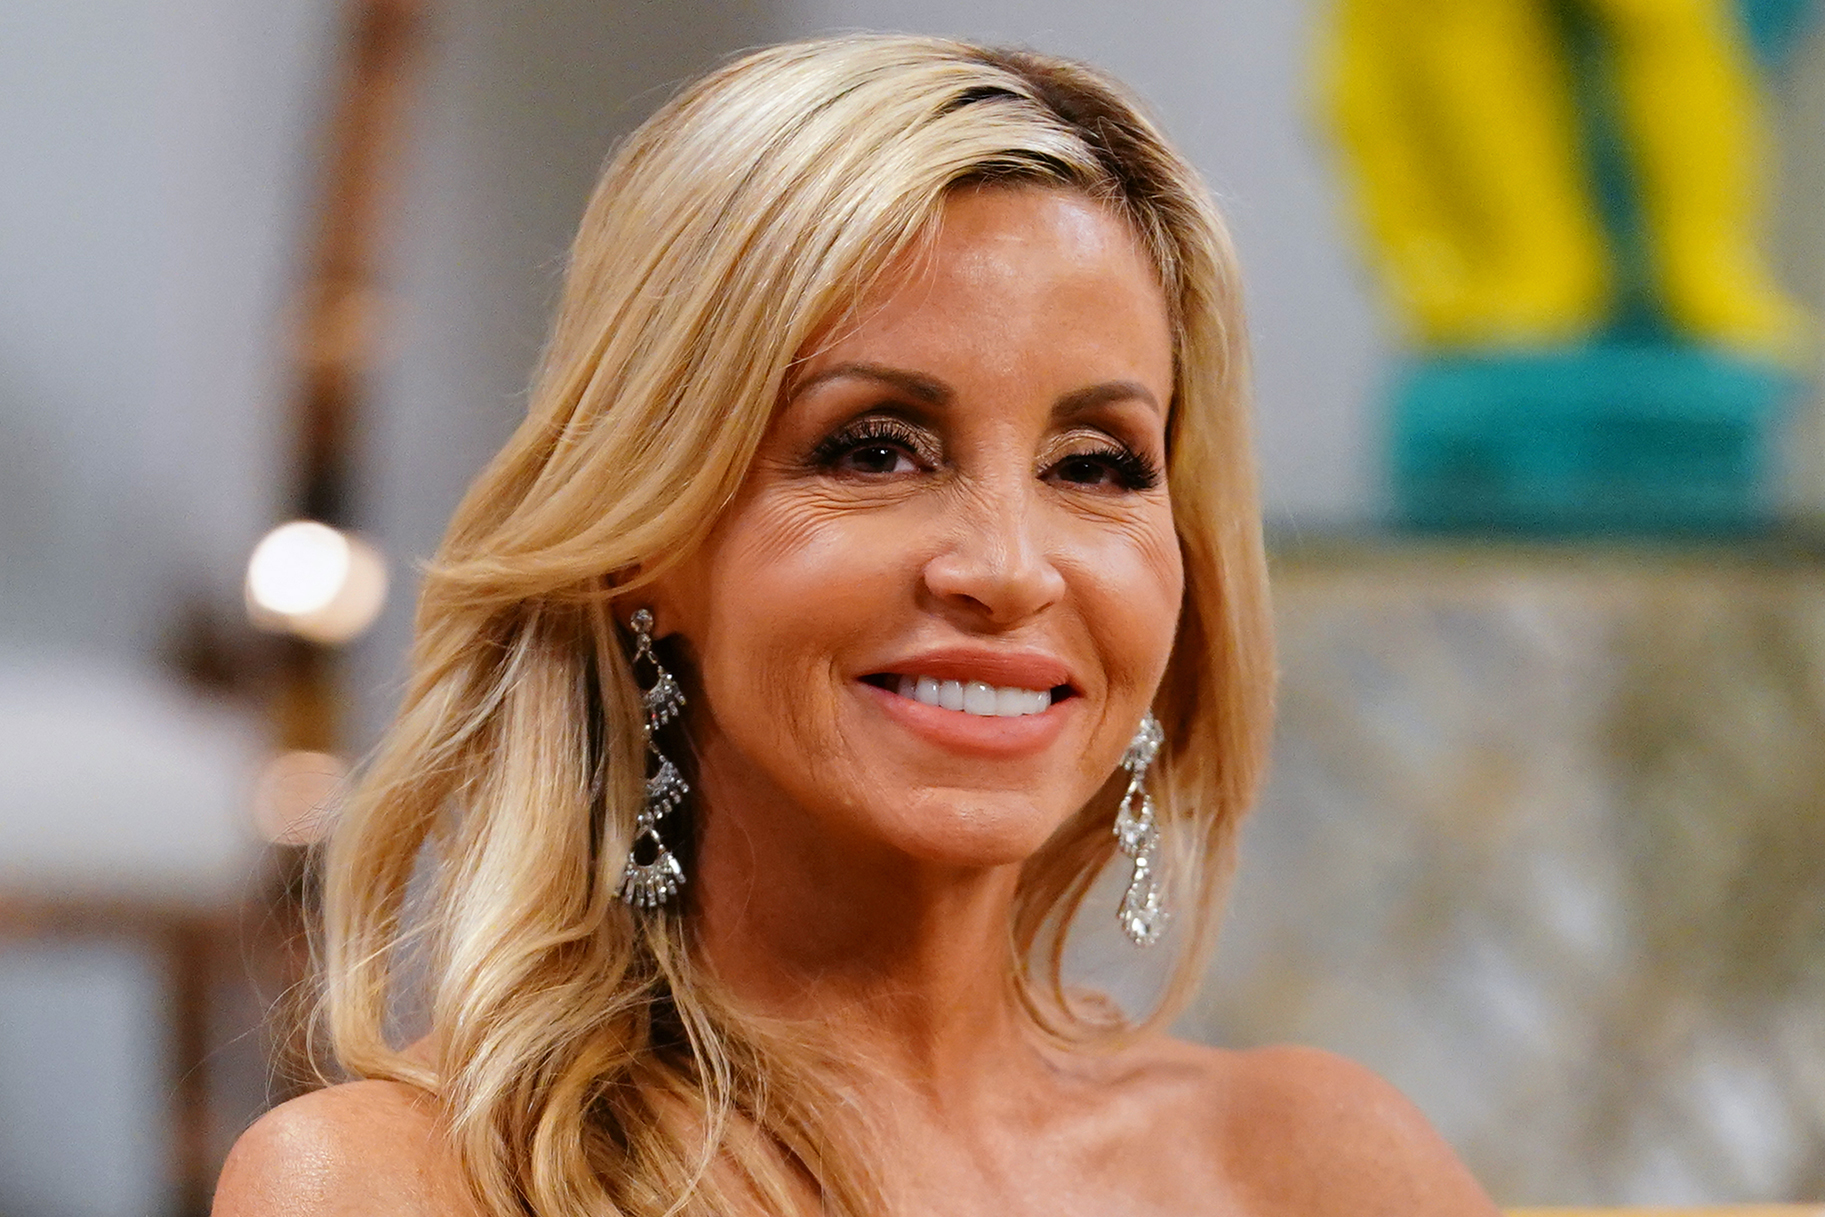 Camille Grammer, The Real Housewives of Beverly Hills, RHOBH, Bravo